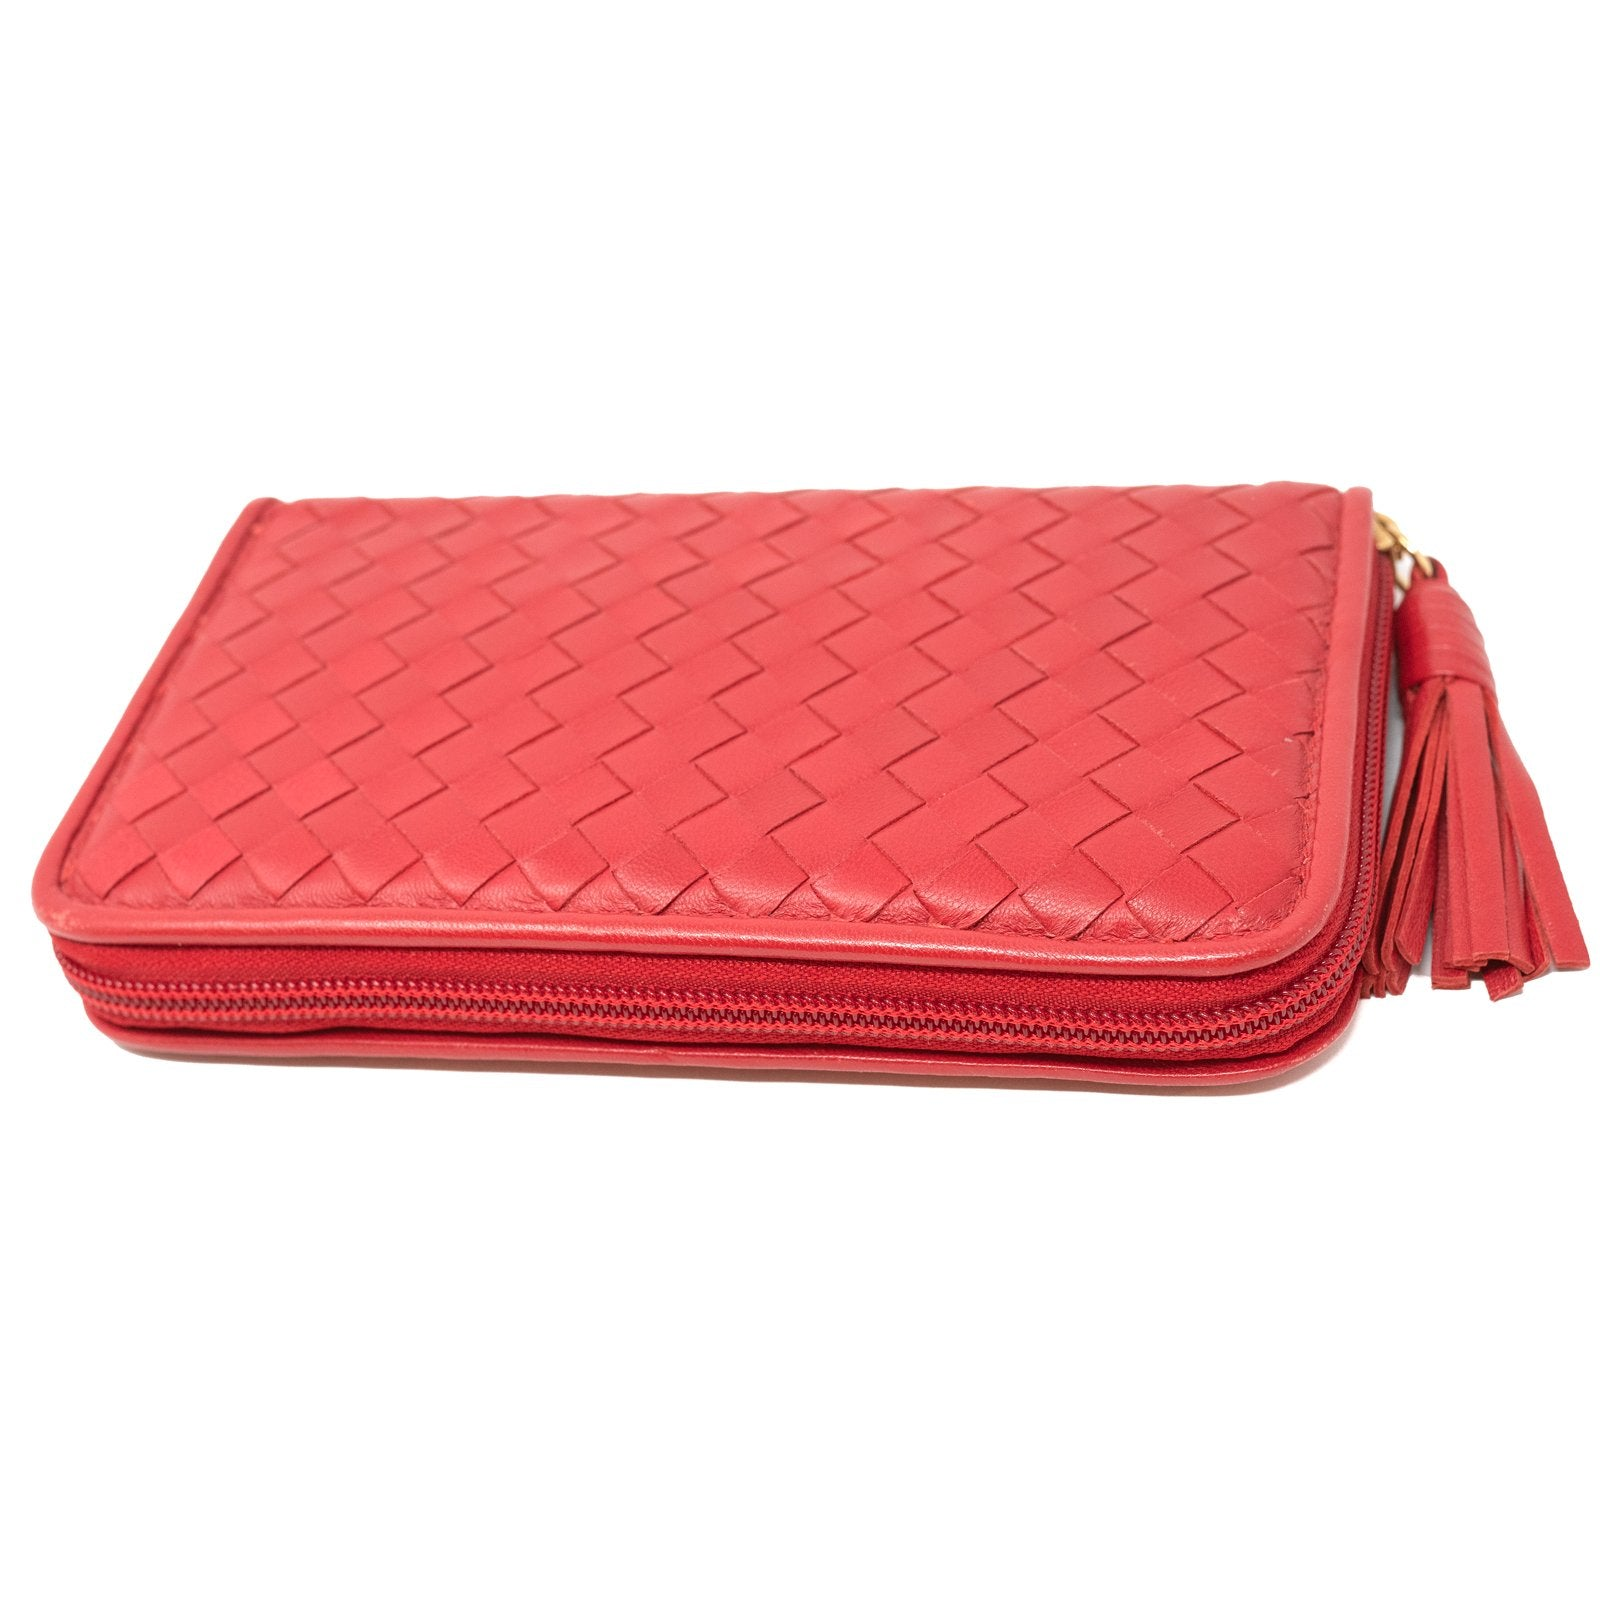 Women Intrecciato Diagonale Leather Zippered Wallet REC6461 - Jennifer Tattanelli